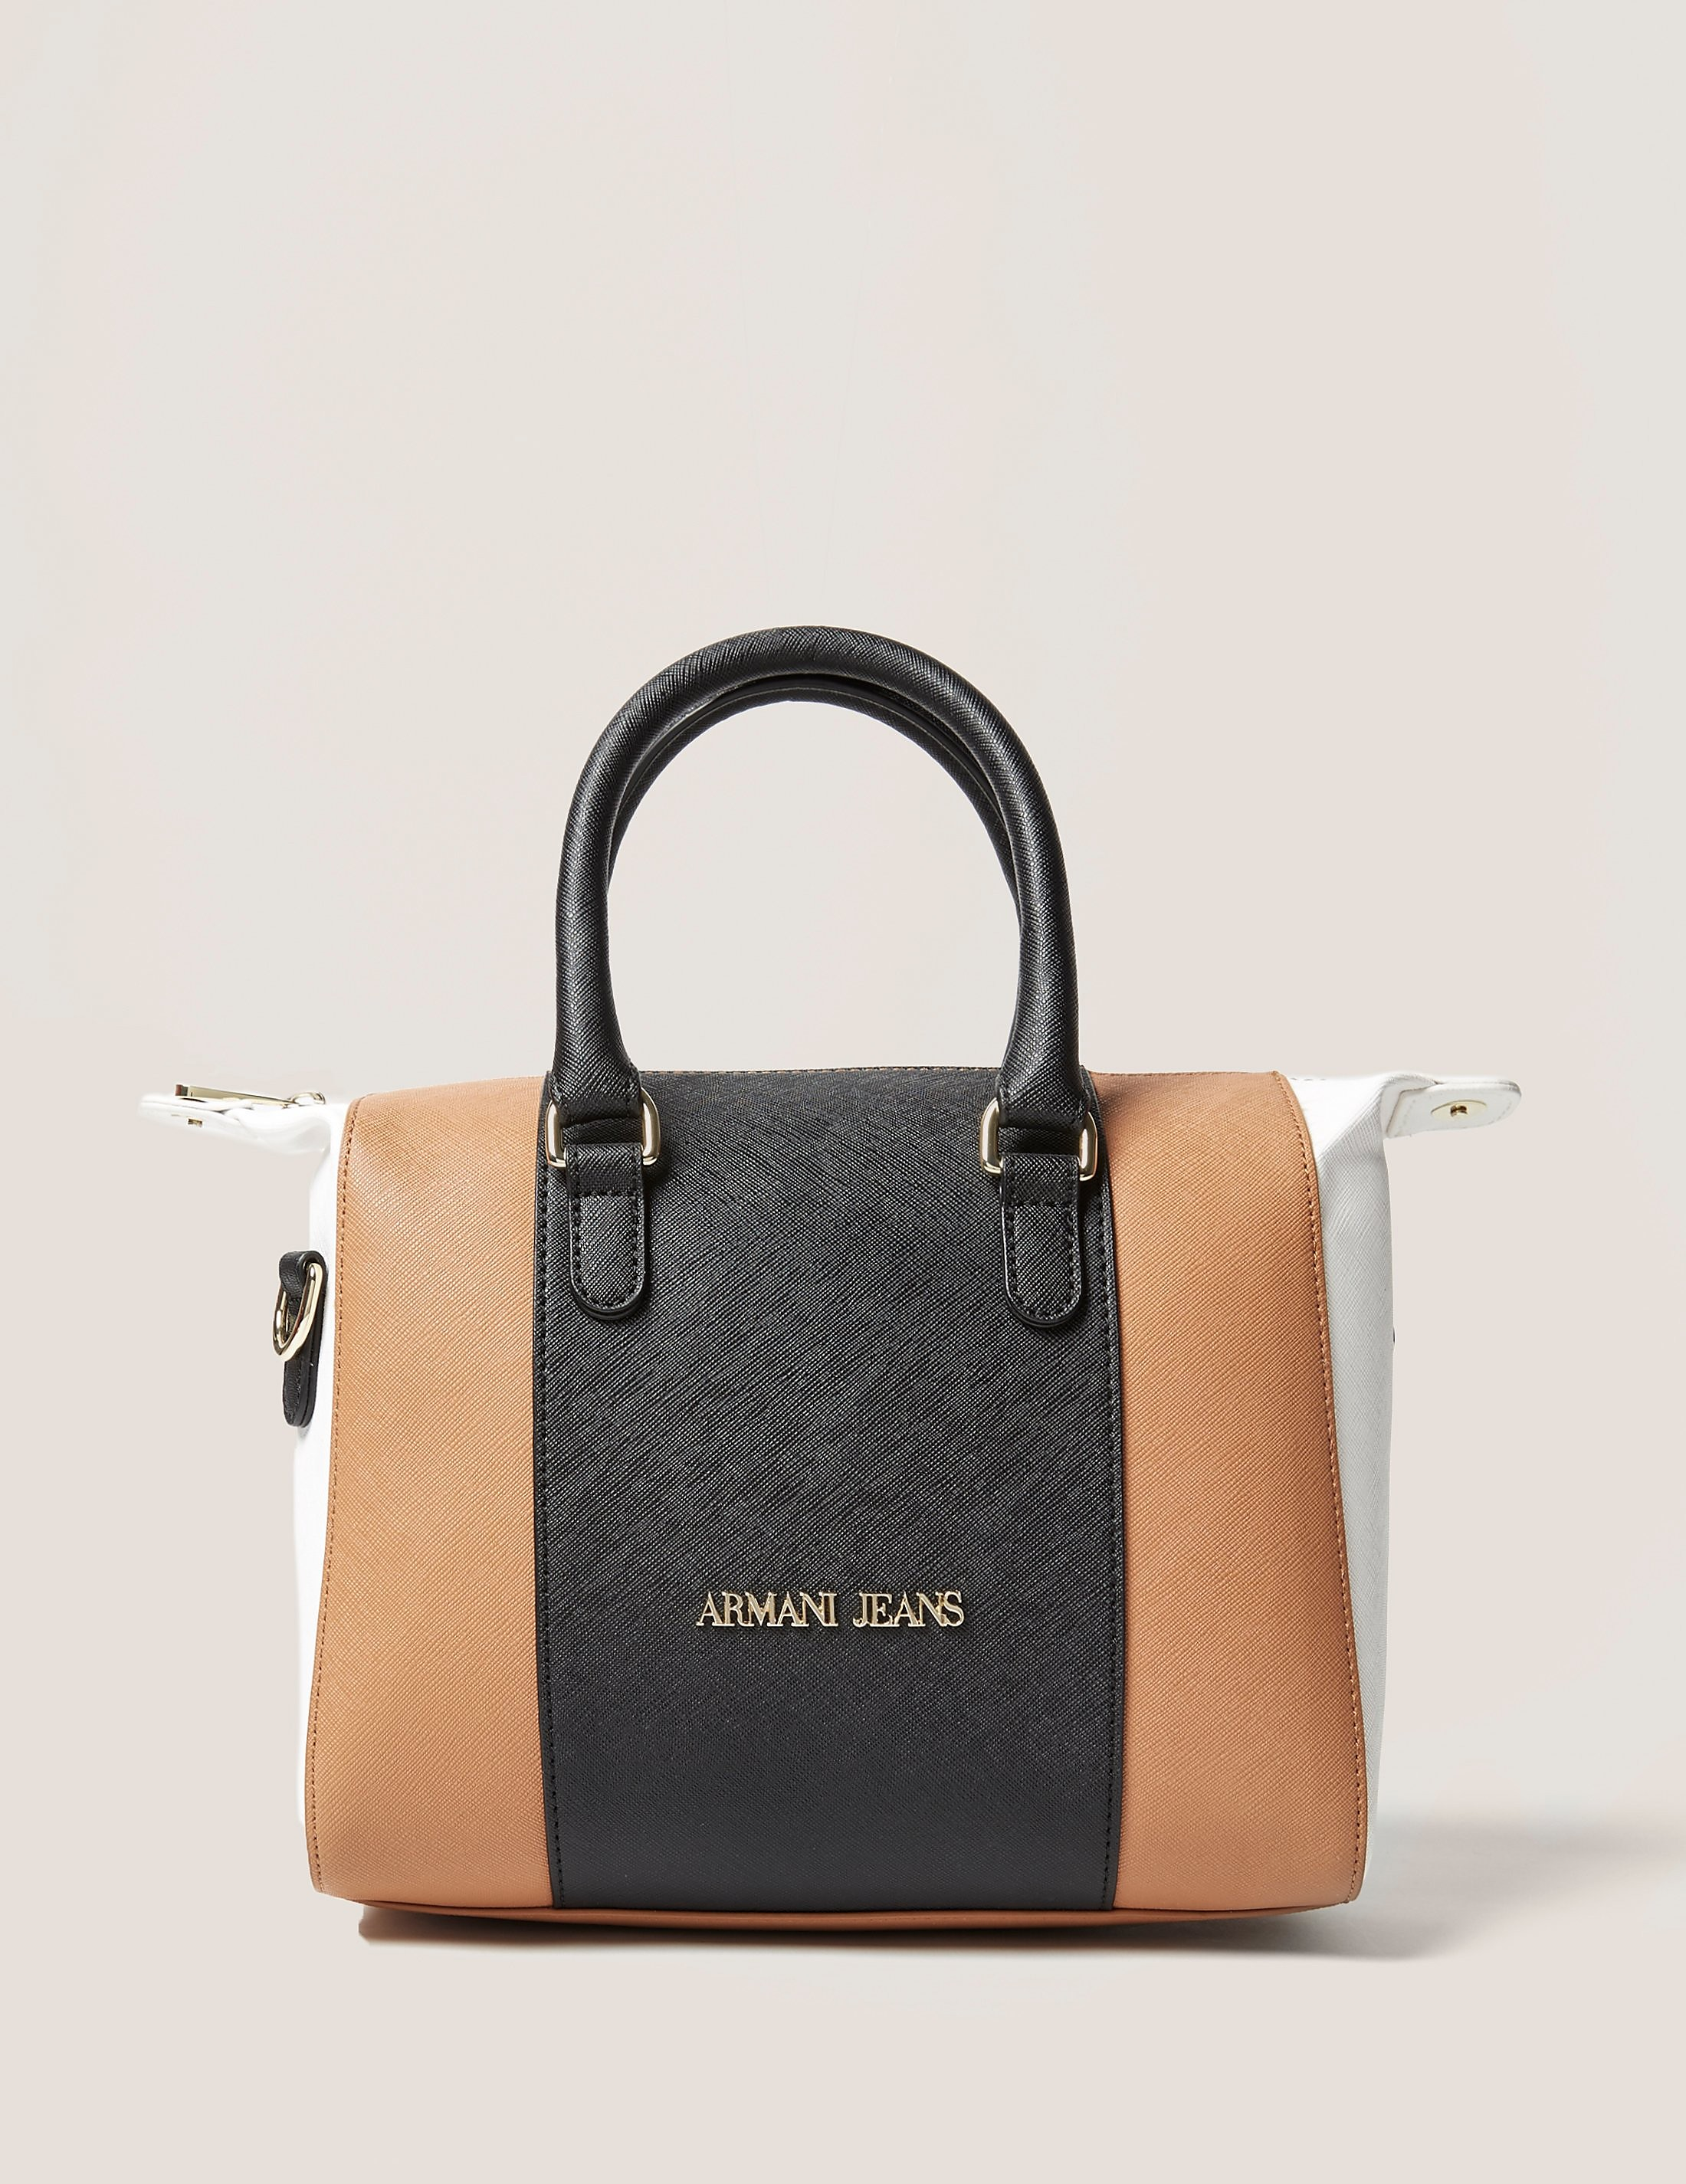 Armani Jeans Colour Block Satchel Bag